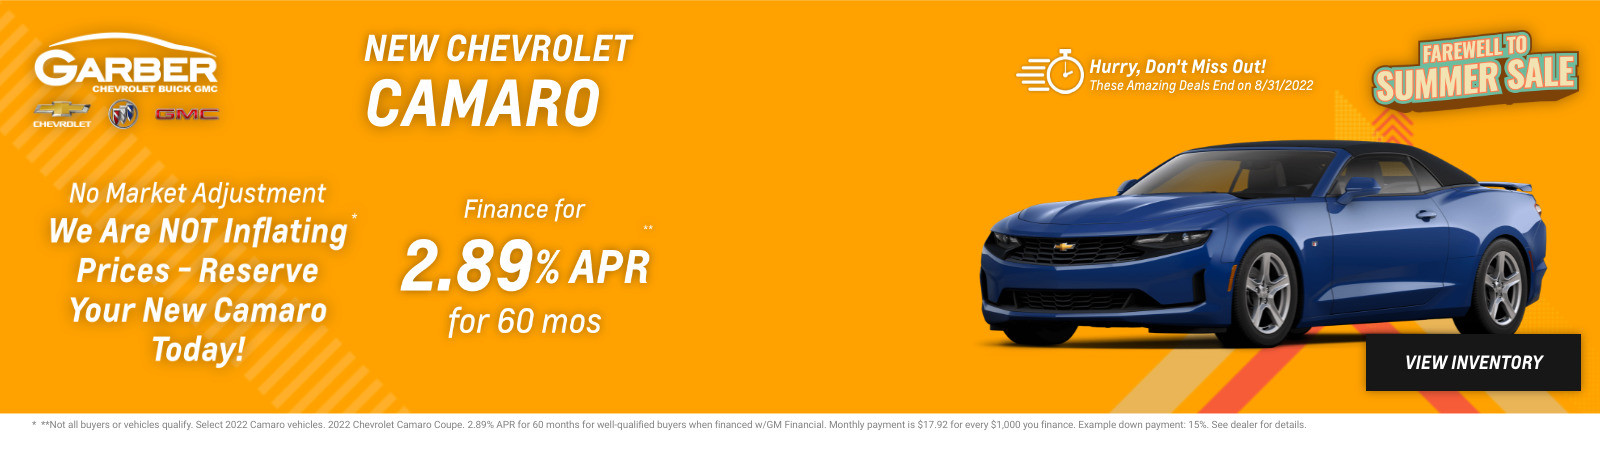 New Chevrolet Camaro Current Deals and Offers in Green Cove Springs, FL